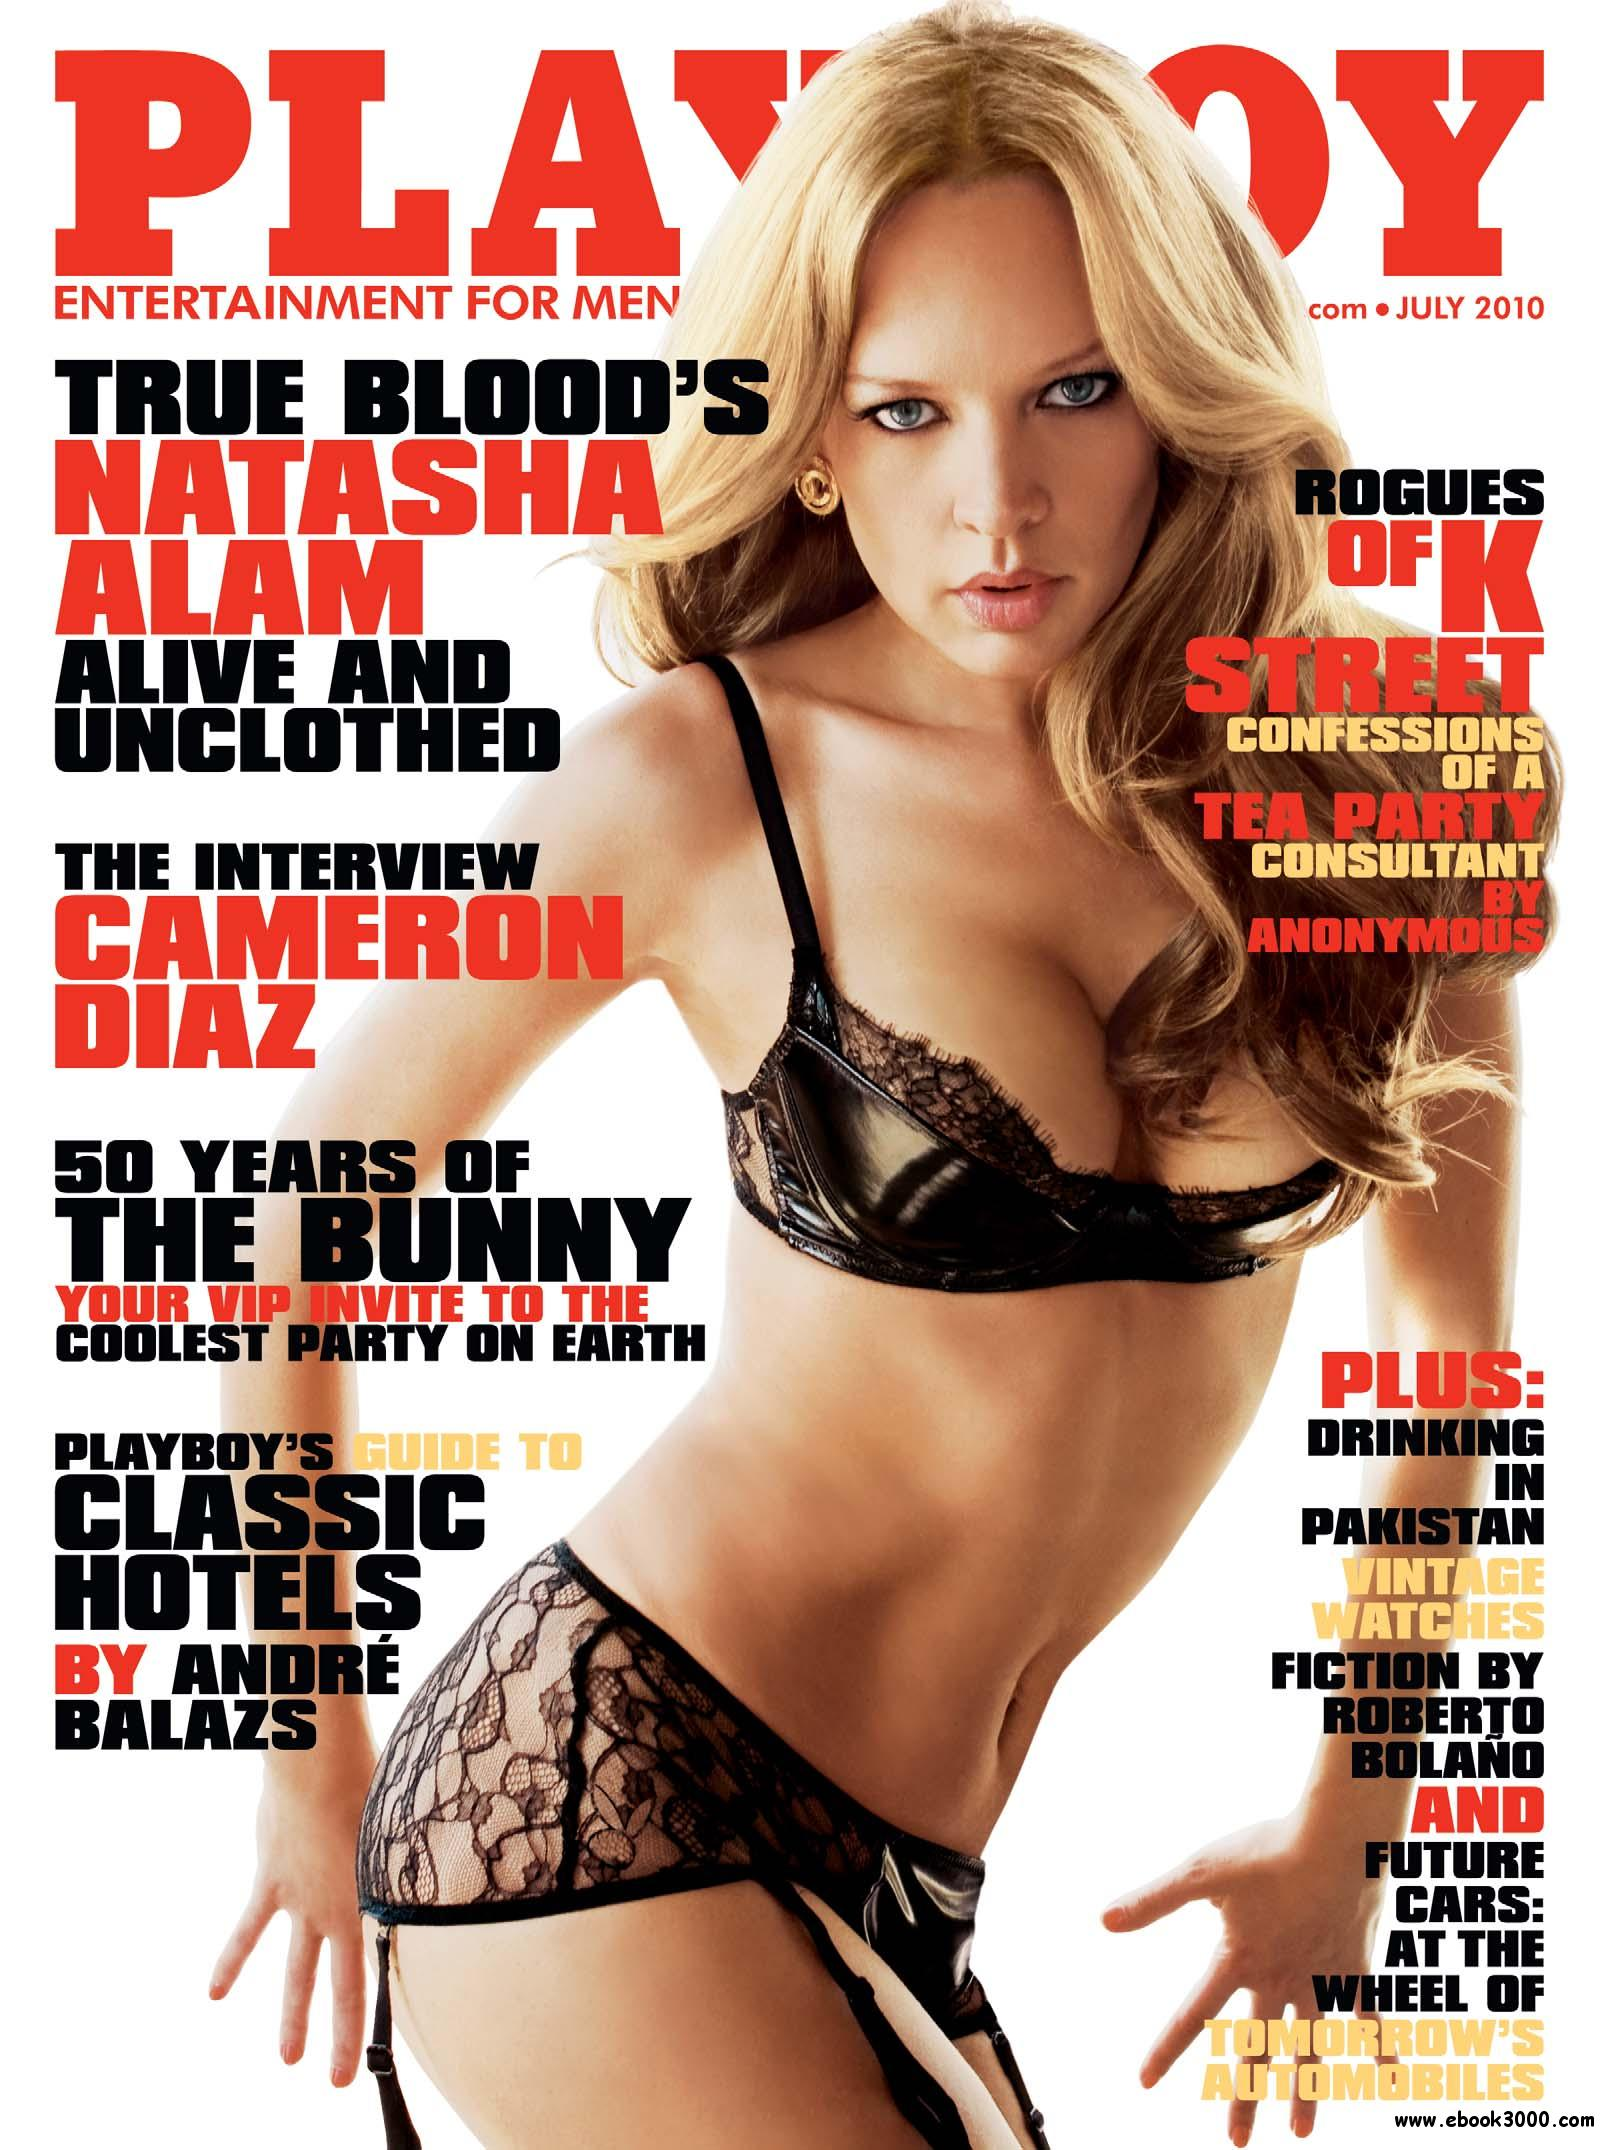 Playboy USA - July 2010 free download